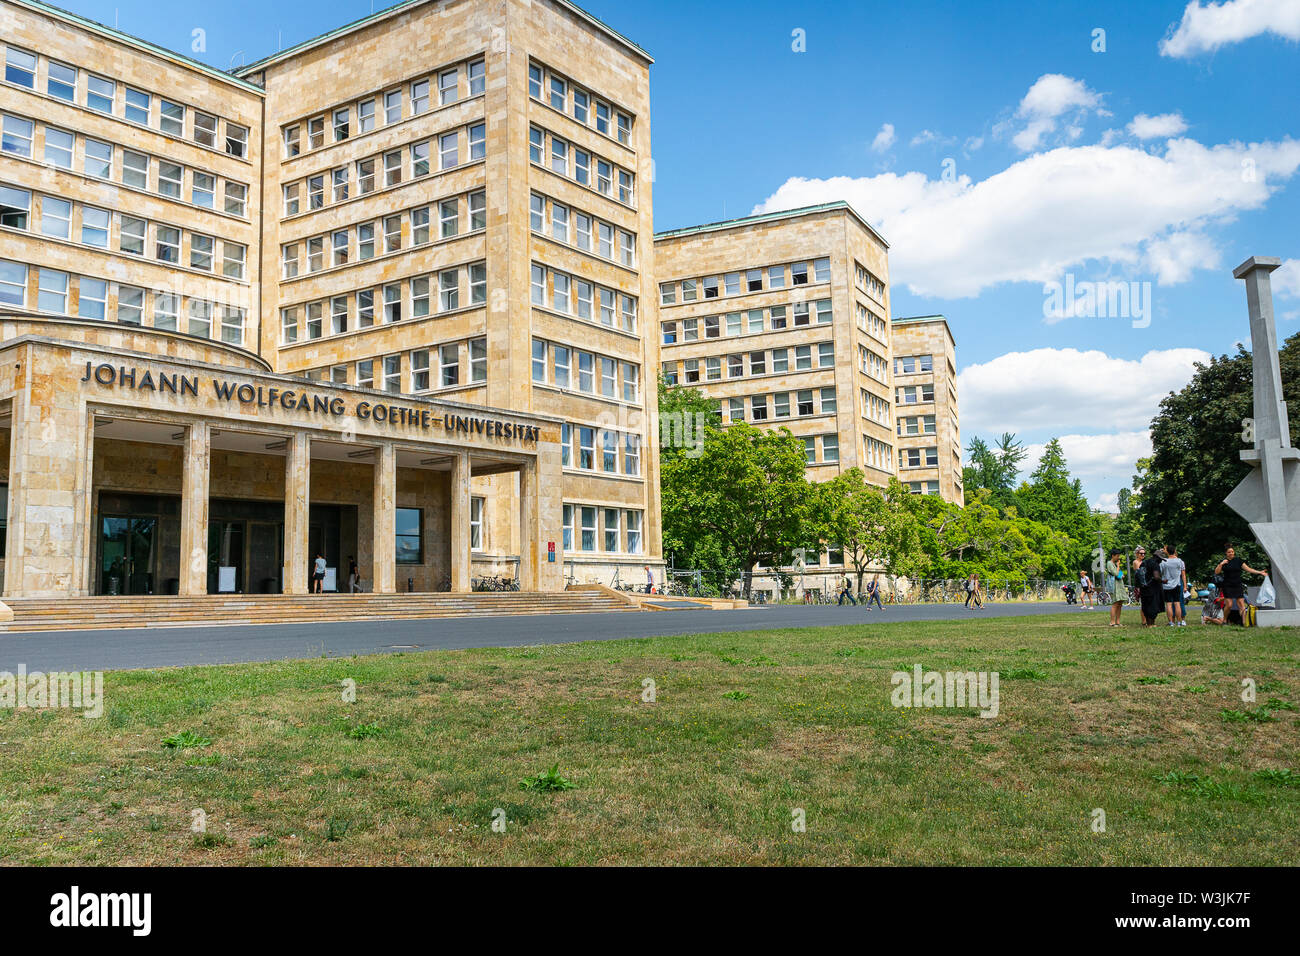 Frankfurt, Germany - July 2019: Frankfurt Goethe University Westend campus main building. The building is famous as historical IG Farben building. Stock Photo